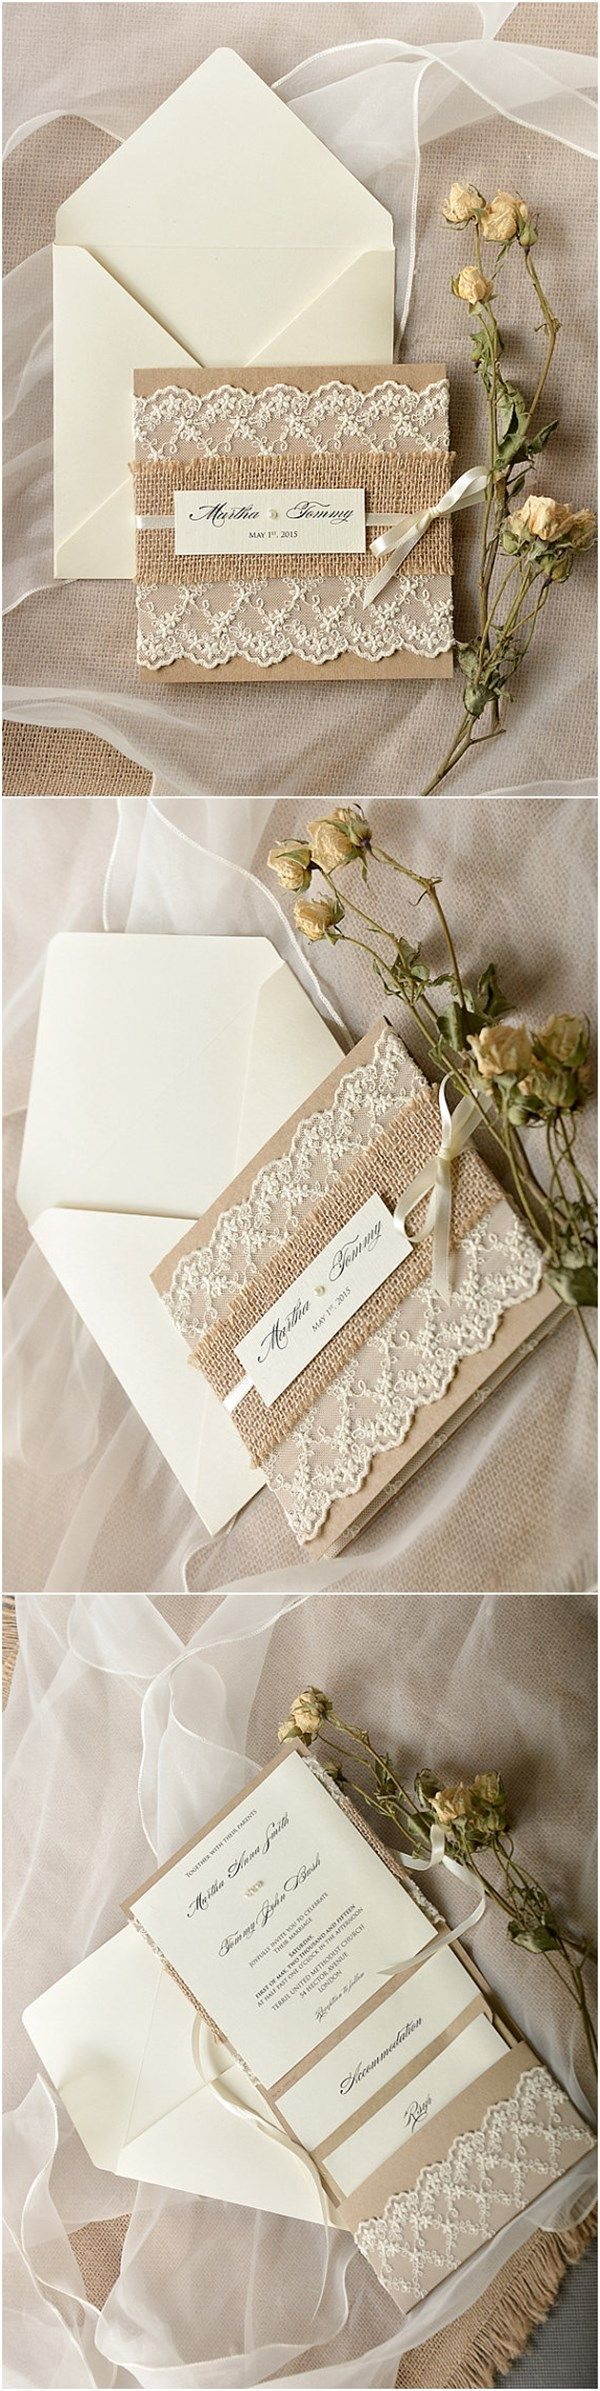 673 best Inspiration for invitations images on Pinterest | Wedding ...